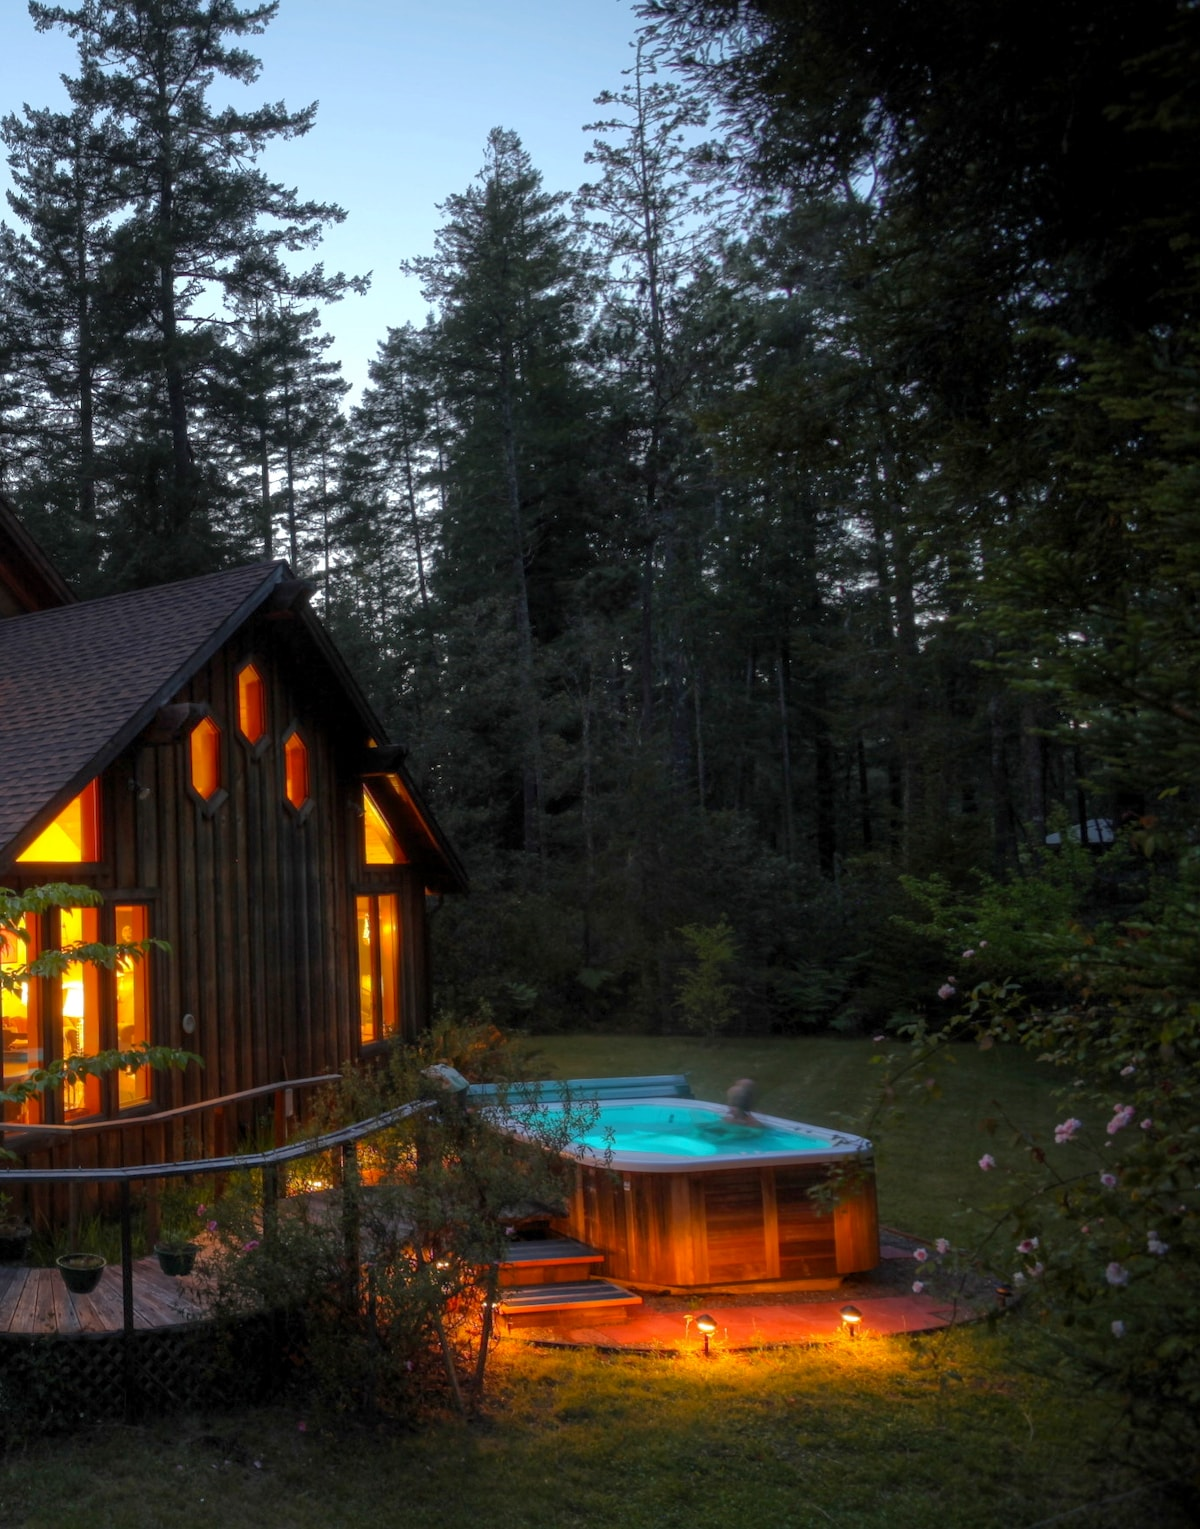 Hot tub on the eastern side of the house with forest all around